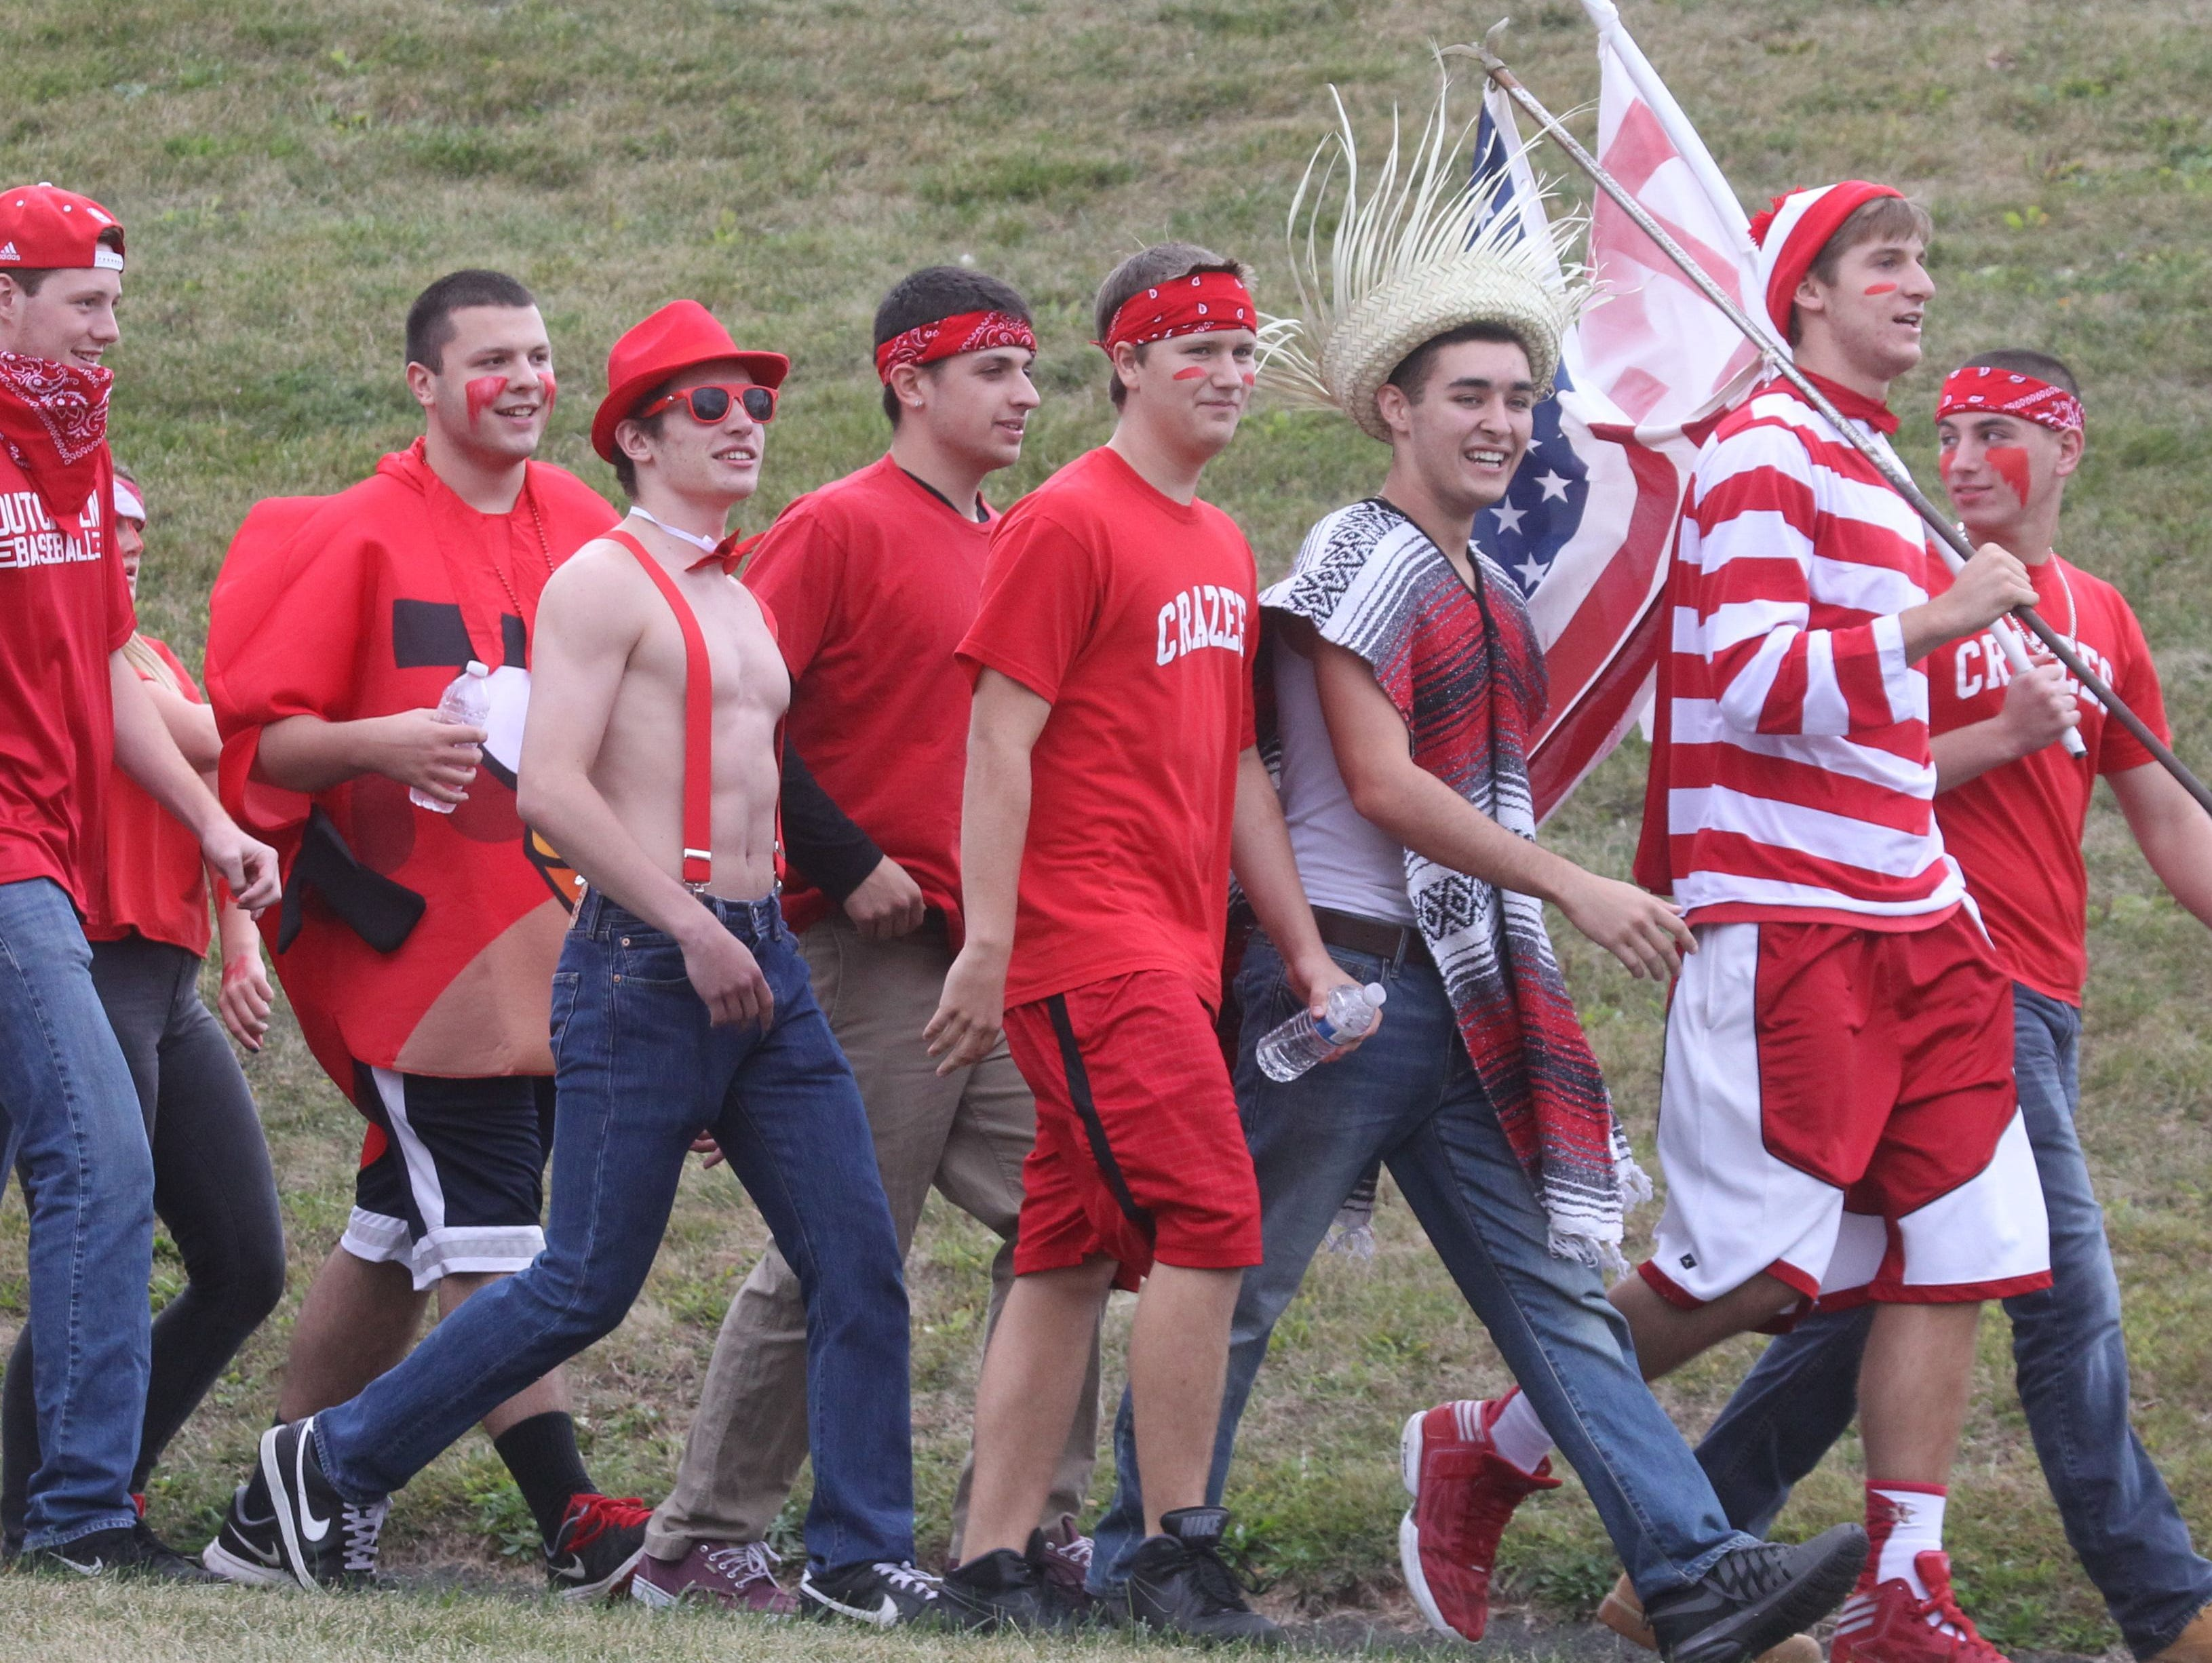 Tappan Zee fans pictured during the Pearl River football team's 26-7 win at Tappan Zee on Oct. 2, 2014. Tappan Zee will host Pearl River at 7 p.m. on Sept. 23, 2016 in the Orange Bowl.